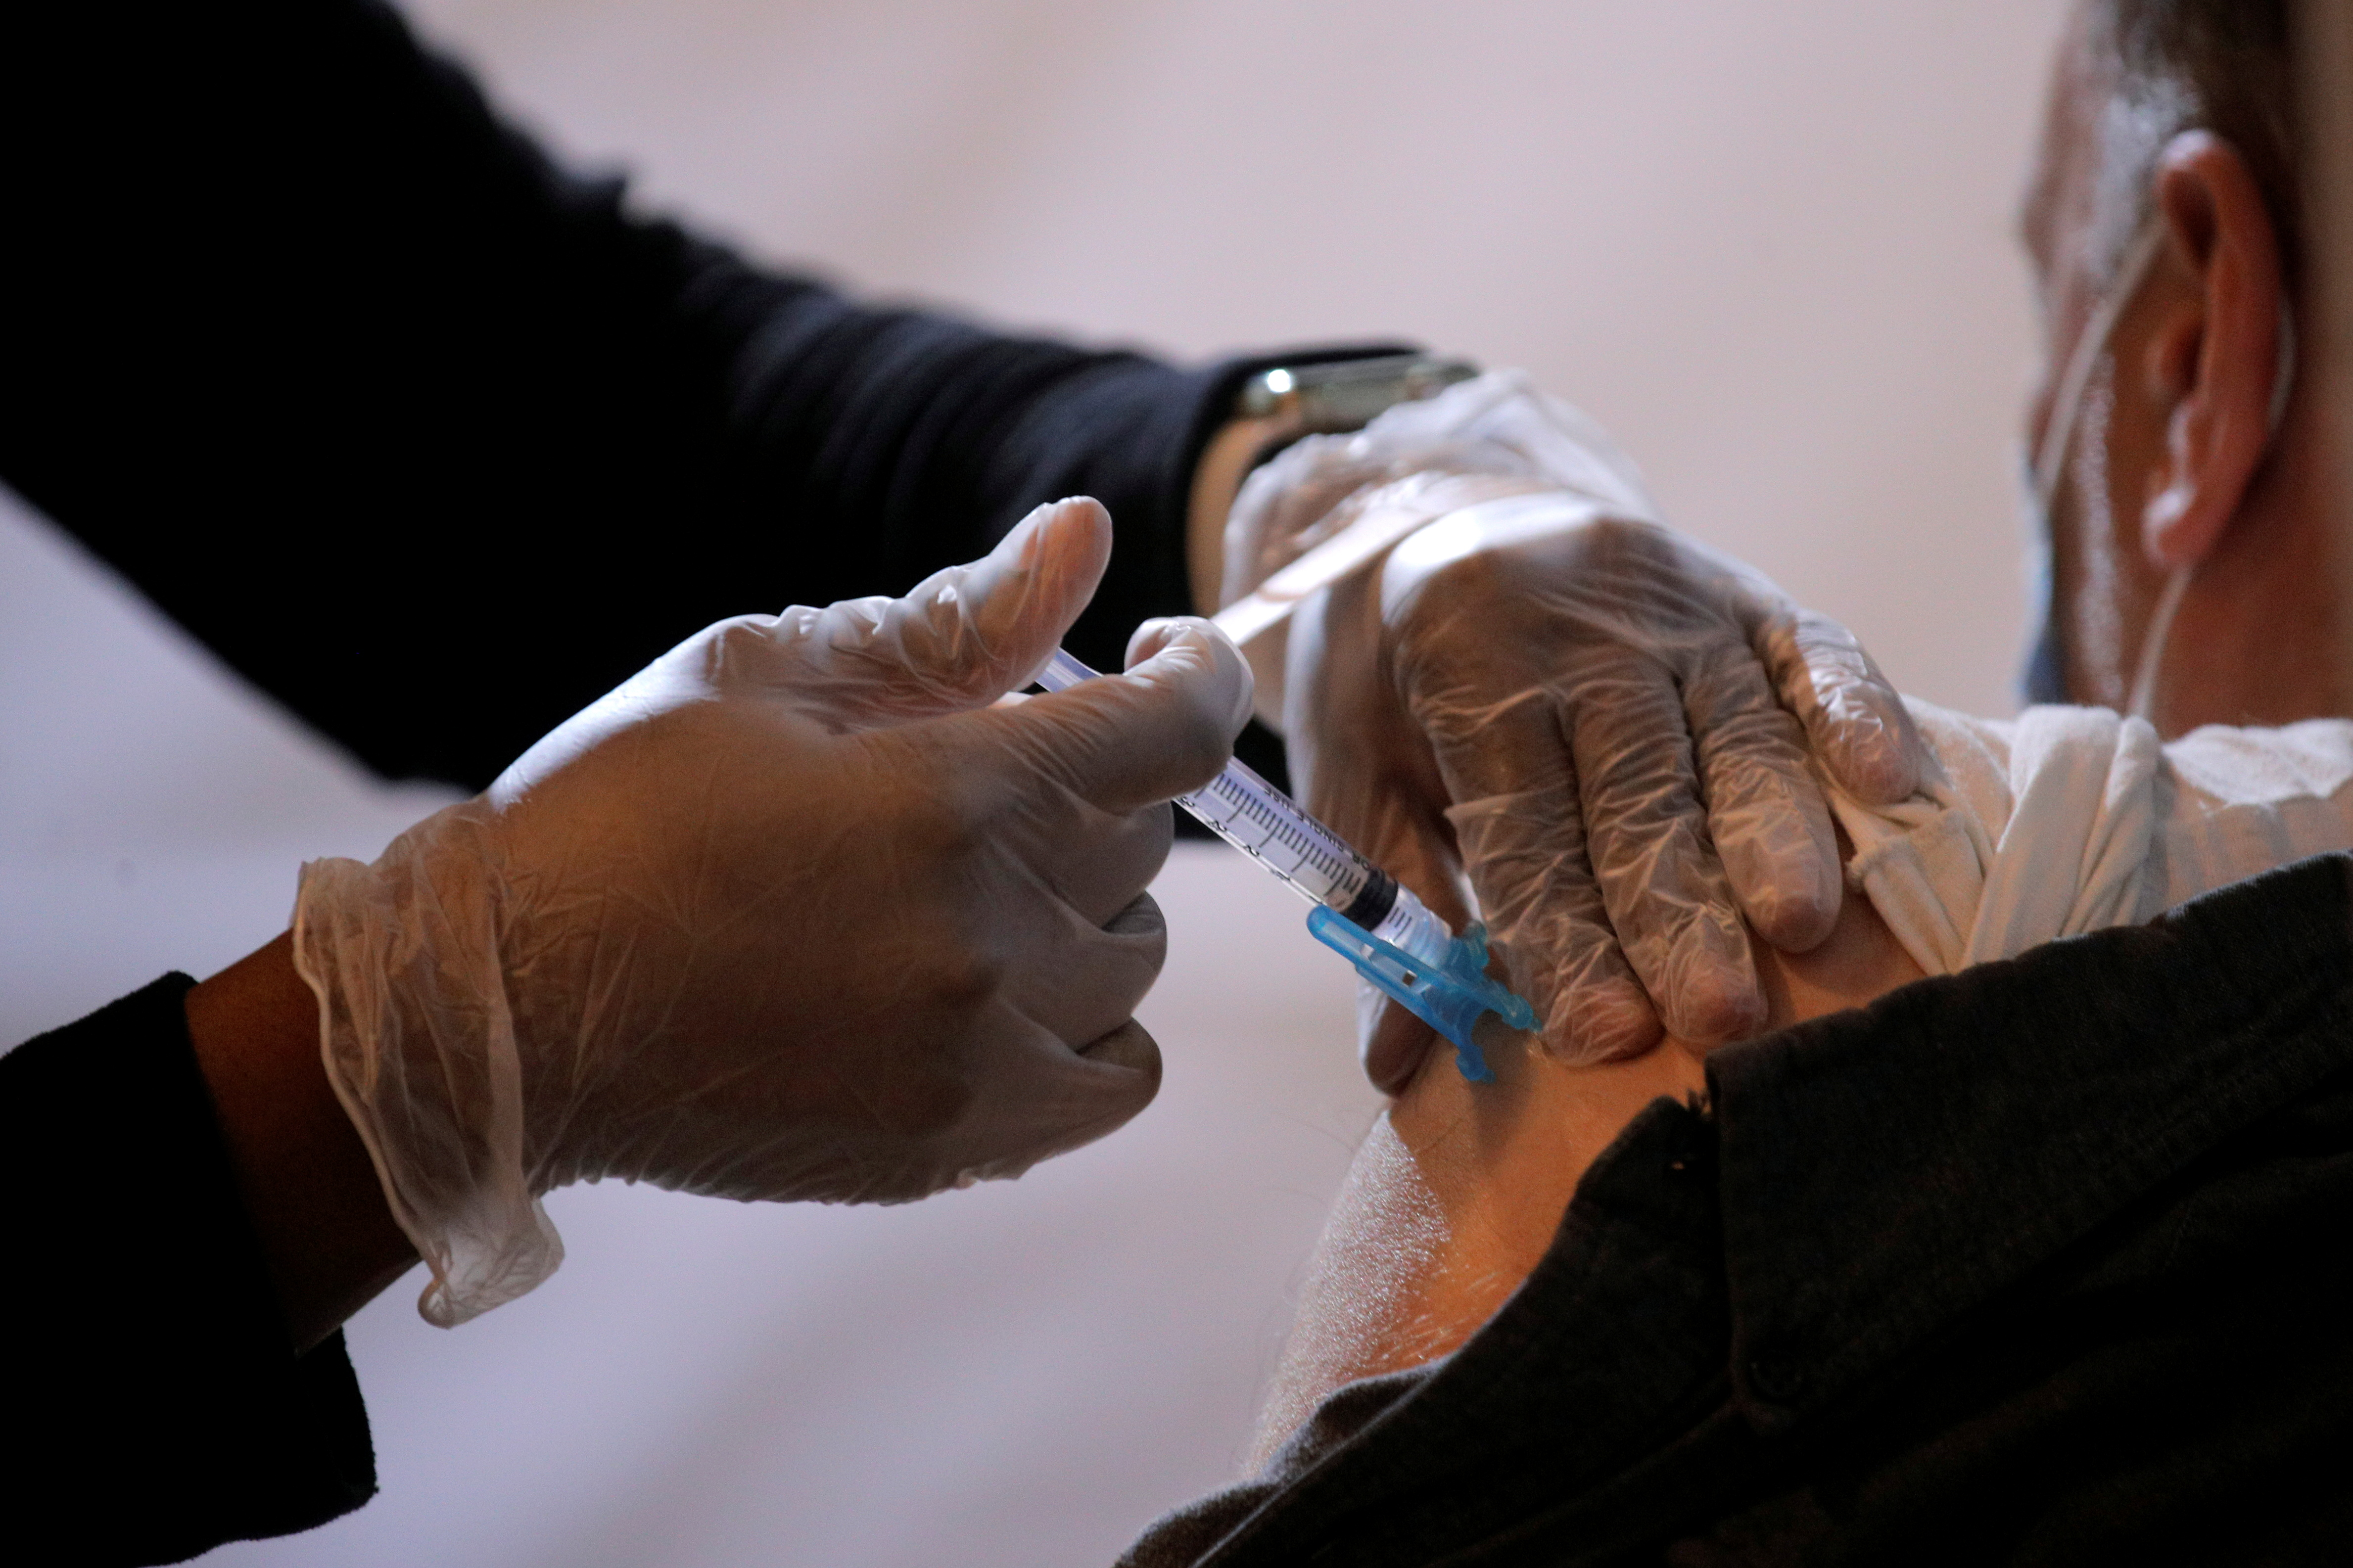 A commuter receives a shot of the Johnson & Johnson vaccine for the coronavirus disease (COVID-19) during the opening of MTA's public vaccination program at a subway station in the Brooklyn borough of New York City, New York, U.S., May 12, 2021. REUTERS/Brendan McDermid